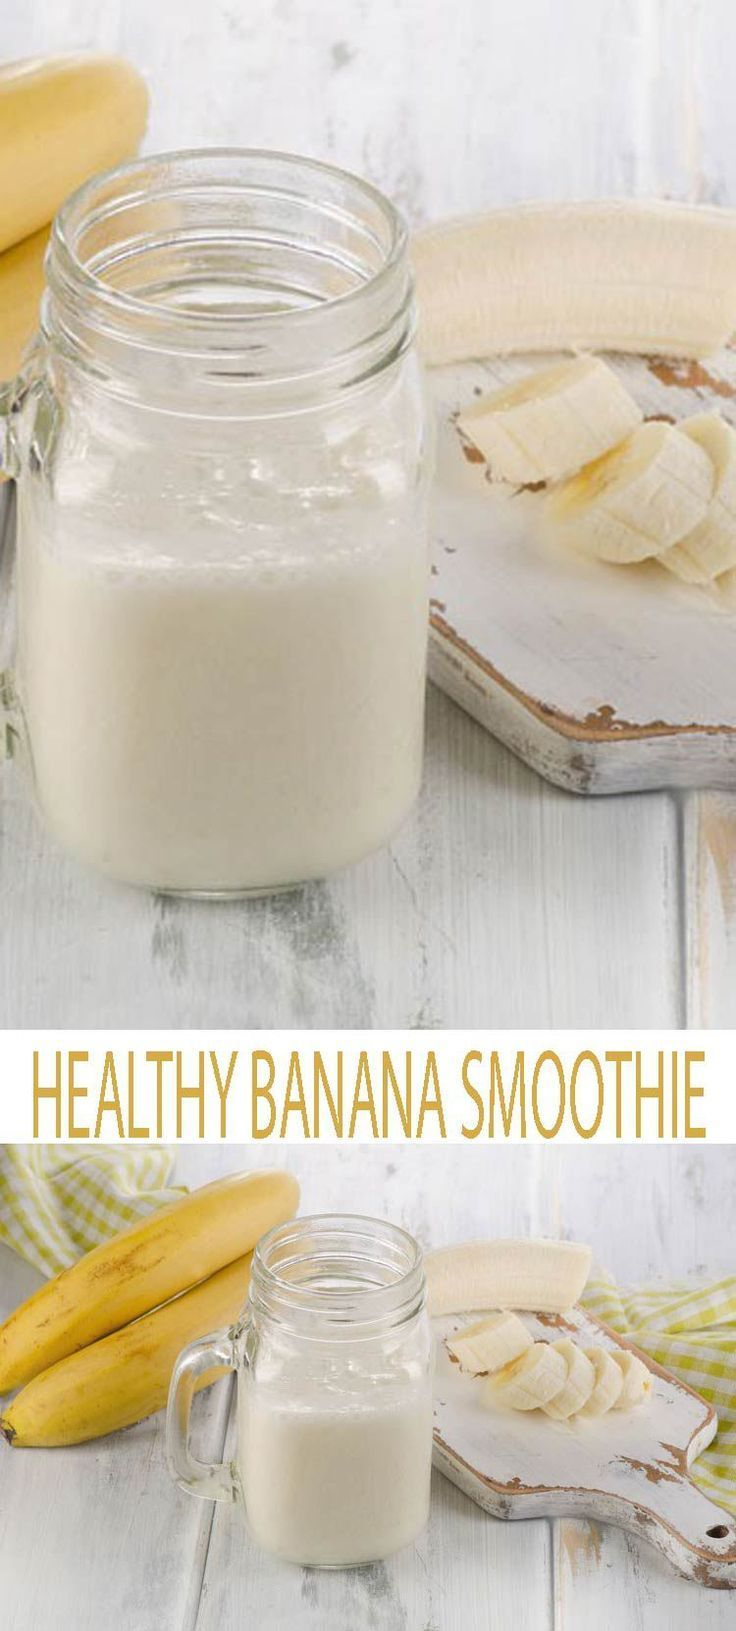 Super Easy Banana Smoothie. This is the Best Banana Smoothie. It's simple. It's easy. And its just three ingredients. So get out your blender and get blending!